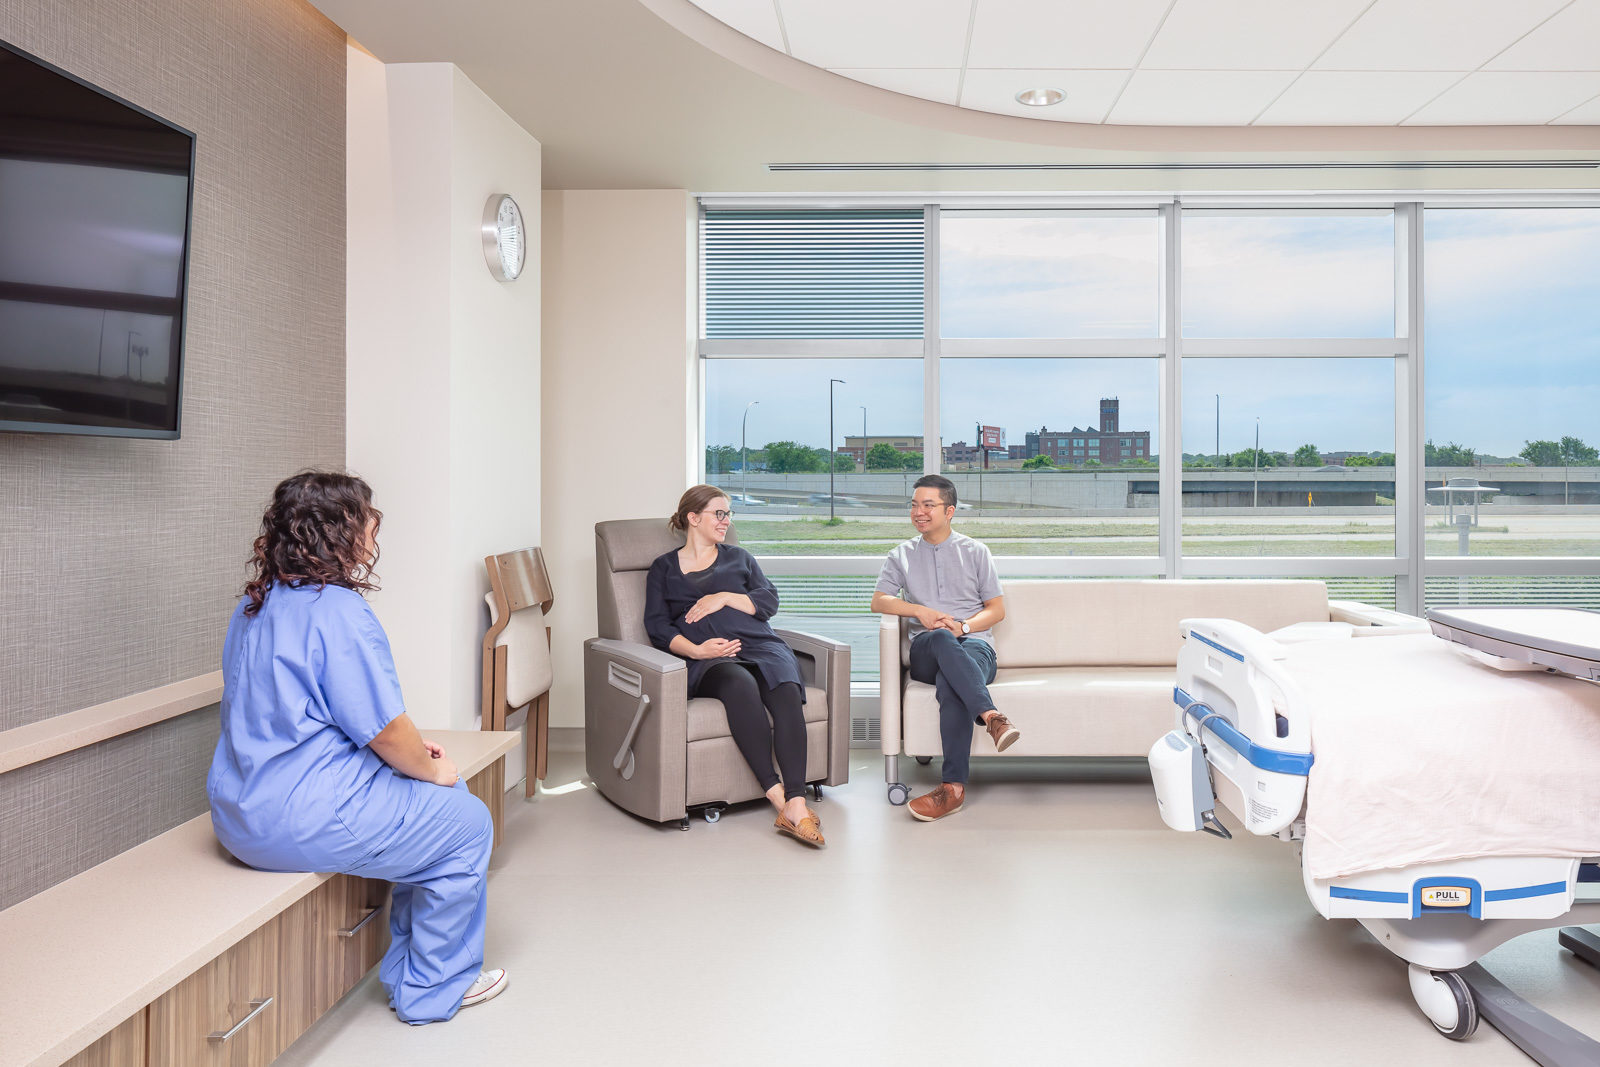 Nurse talking to pregnant woman and a man in a hospital room